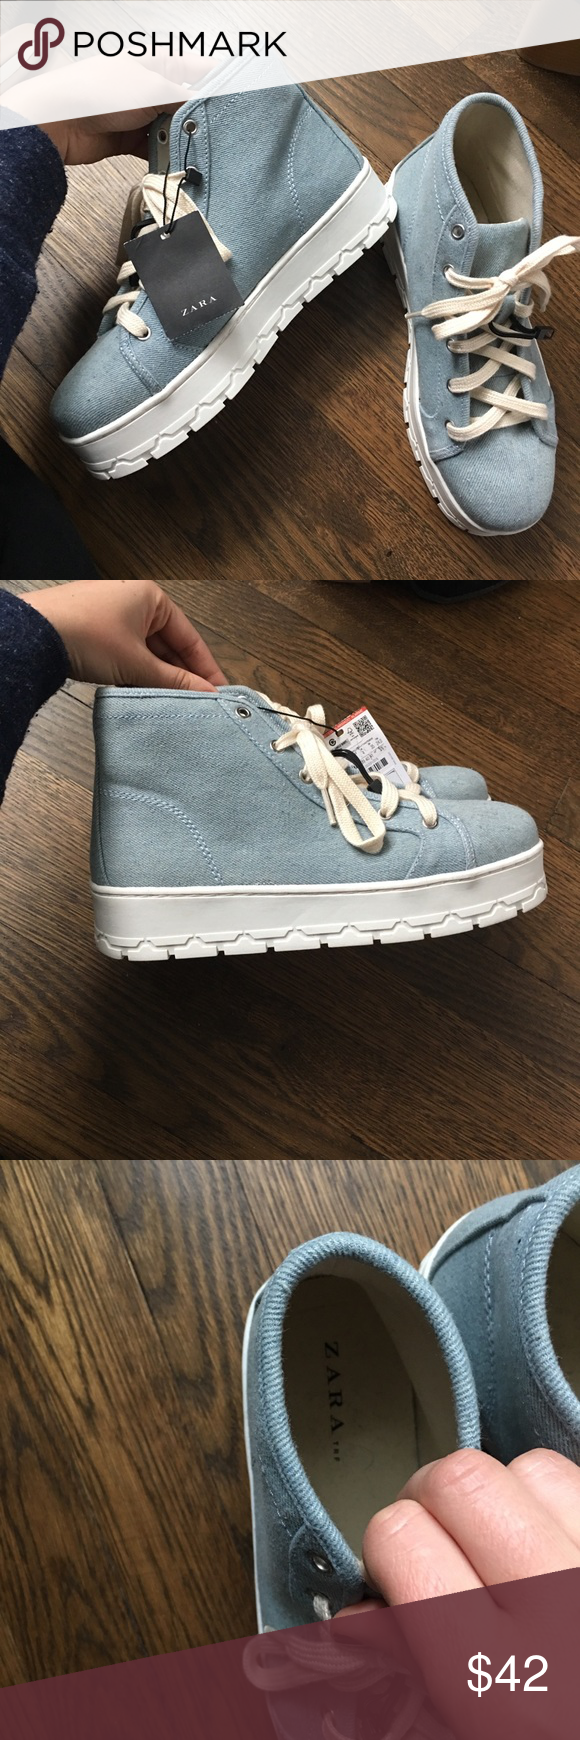 cb4b590e9bba5 ZARA Women s Blue Platform Sneakers ZARA light blue sneakers that are 🆕  with tag and never